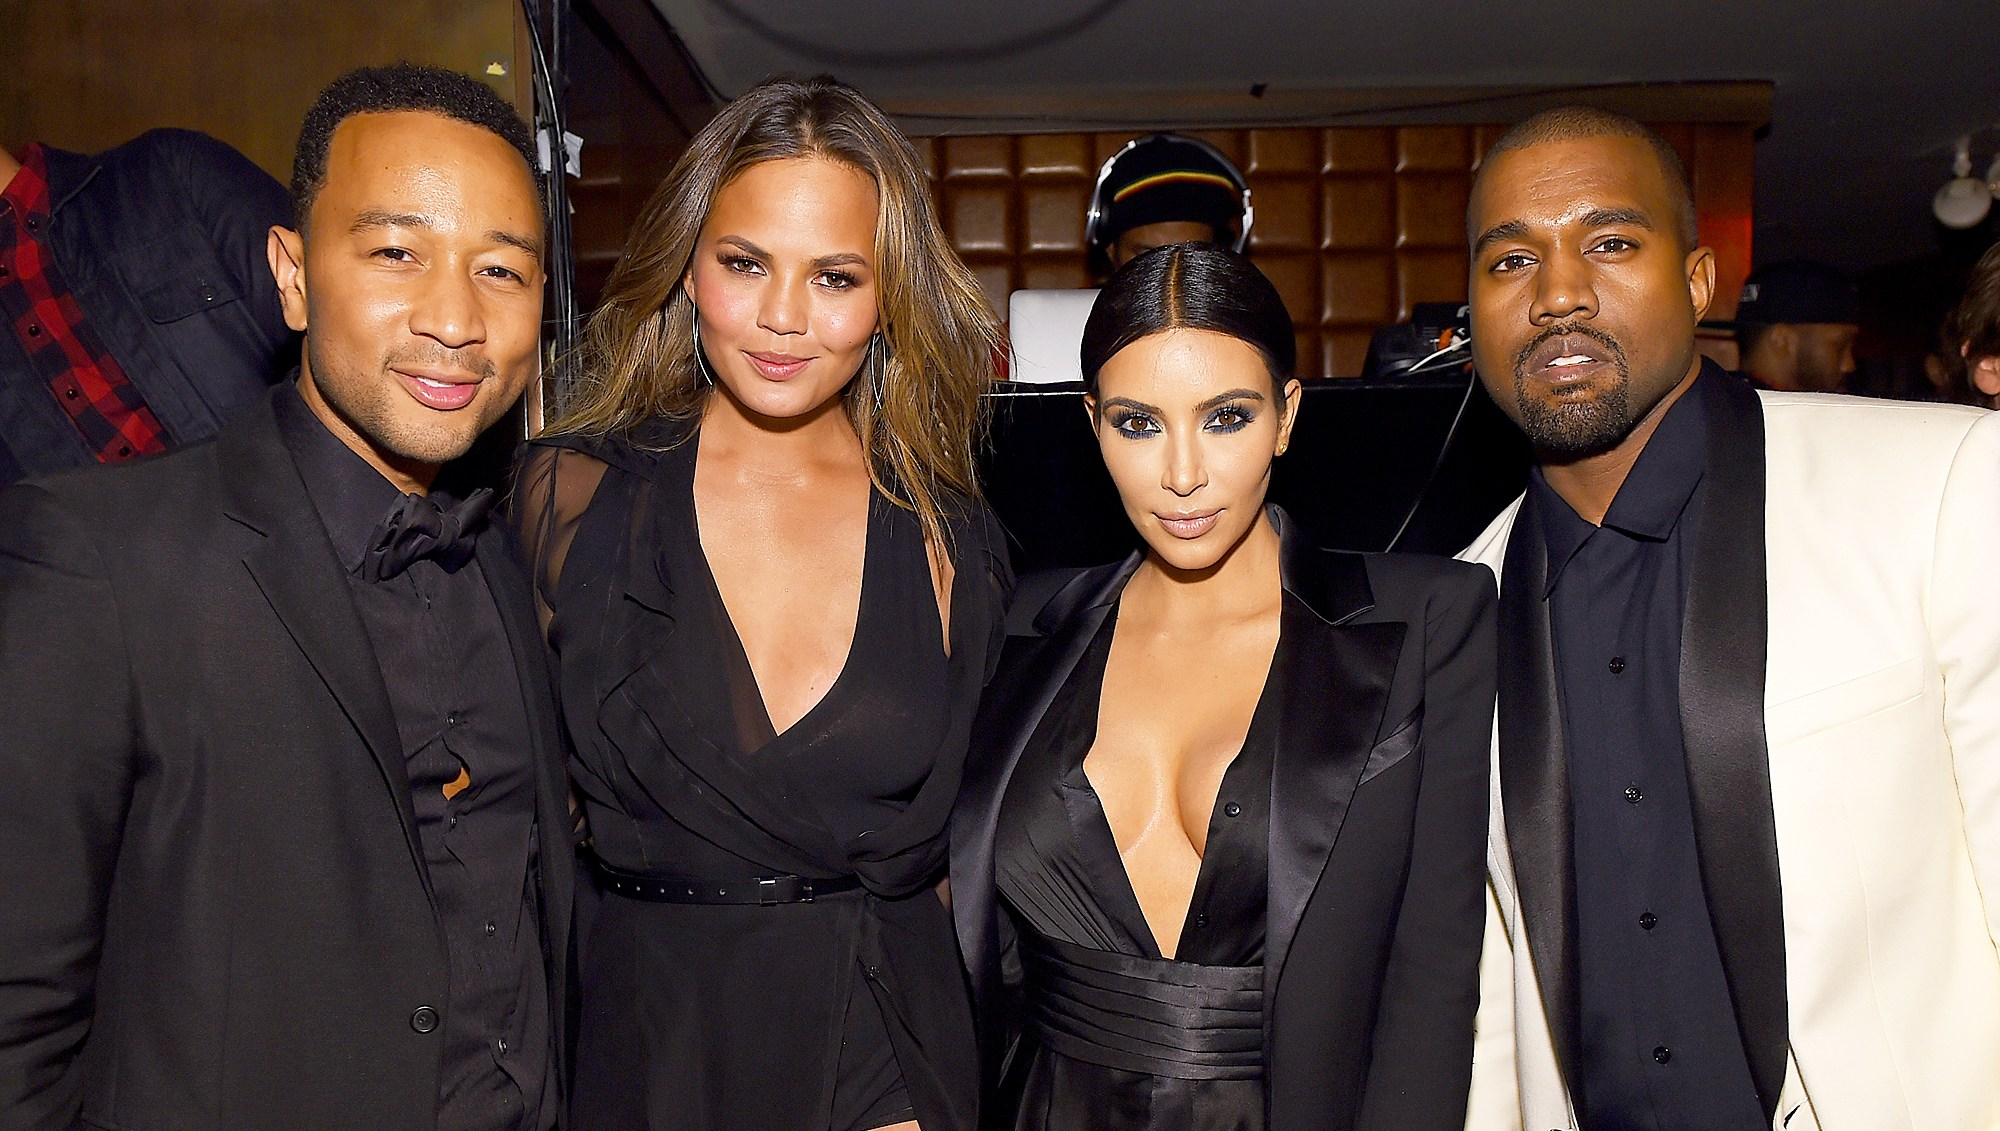 """John Legend, Chrissy Teigen, Kim Kardashian and Kanye West attend John Legend's Birthday And The 10th Anniversary Of His Debut Album """"Get Lifted"""" at CATCH NYC on January 8, 2015 in New York City."""